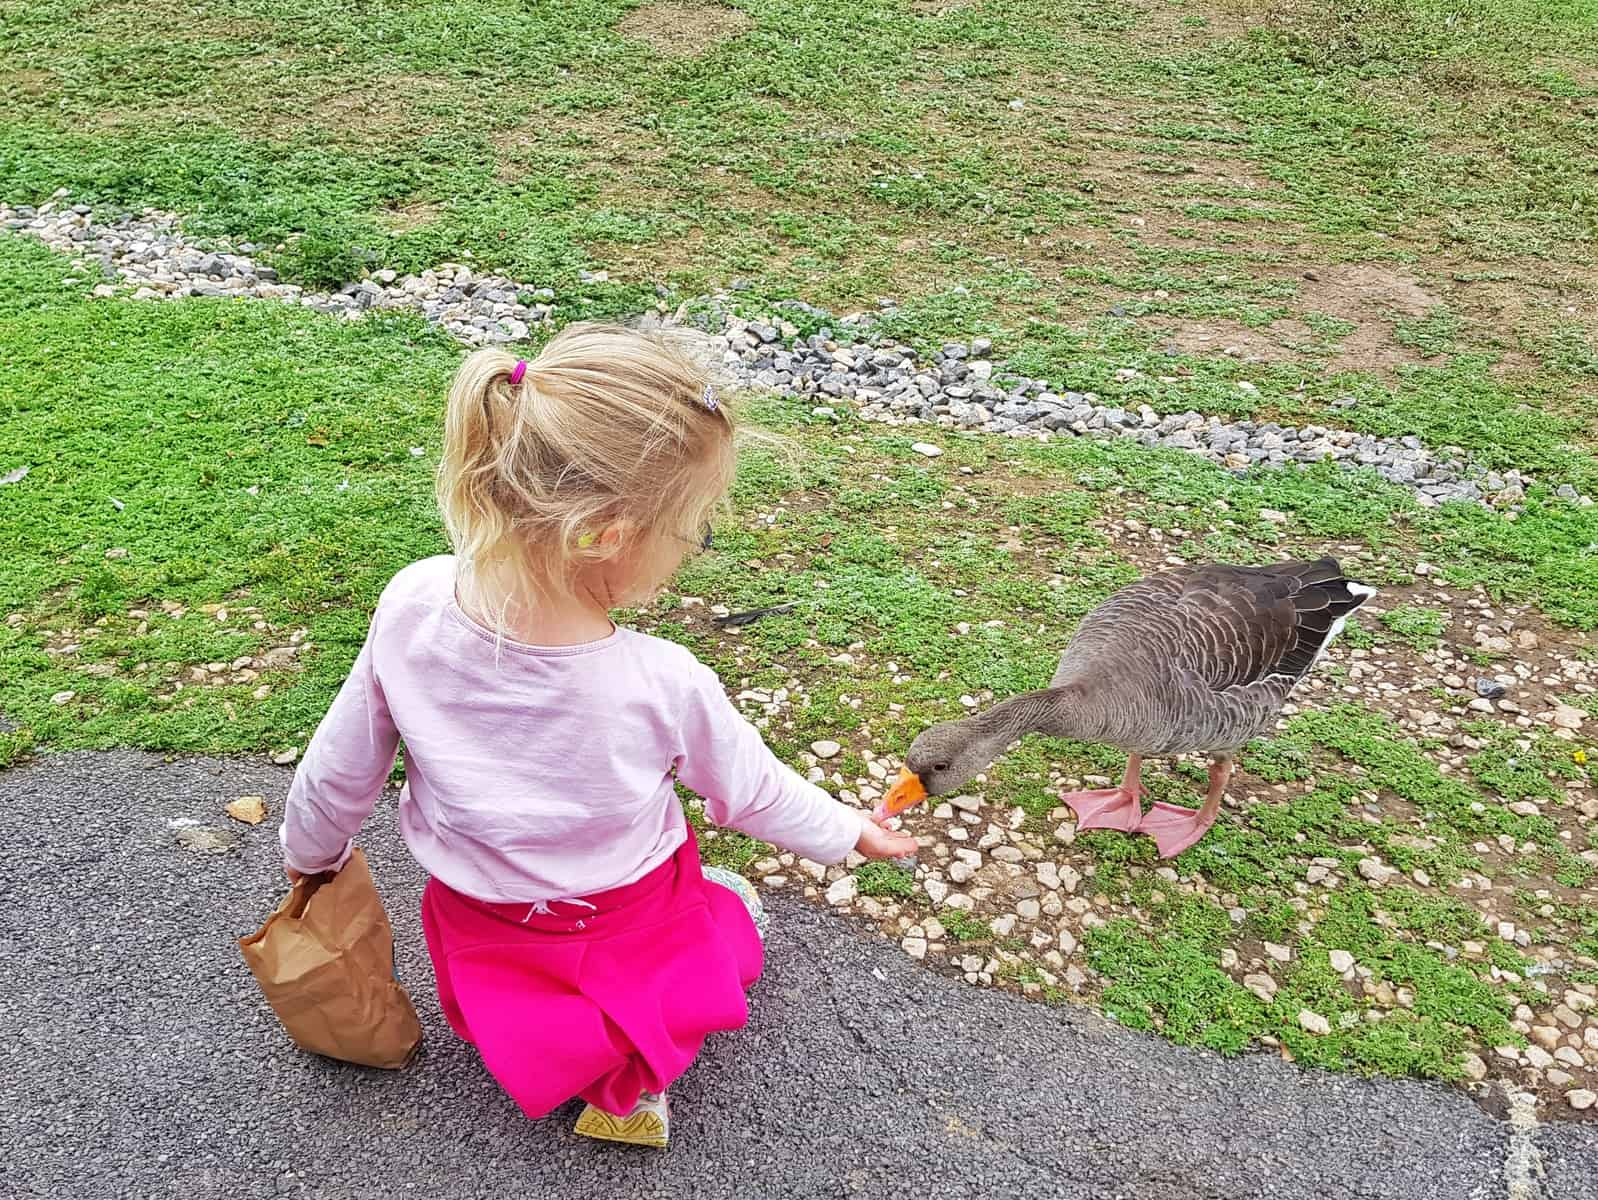 WWT Slimbridge, Gloucestershire - little girl feeding goose by hand